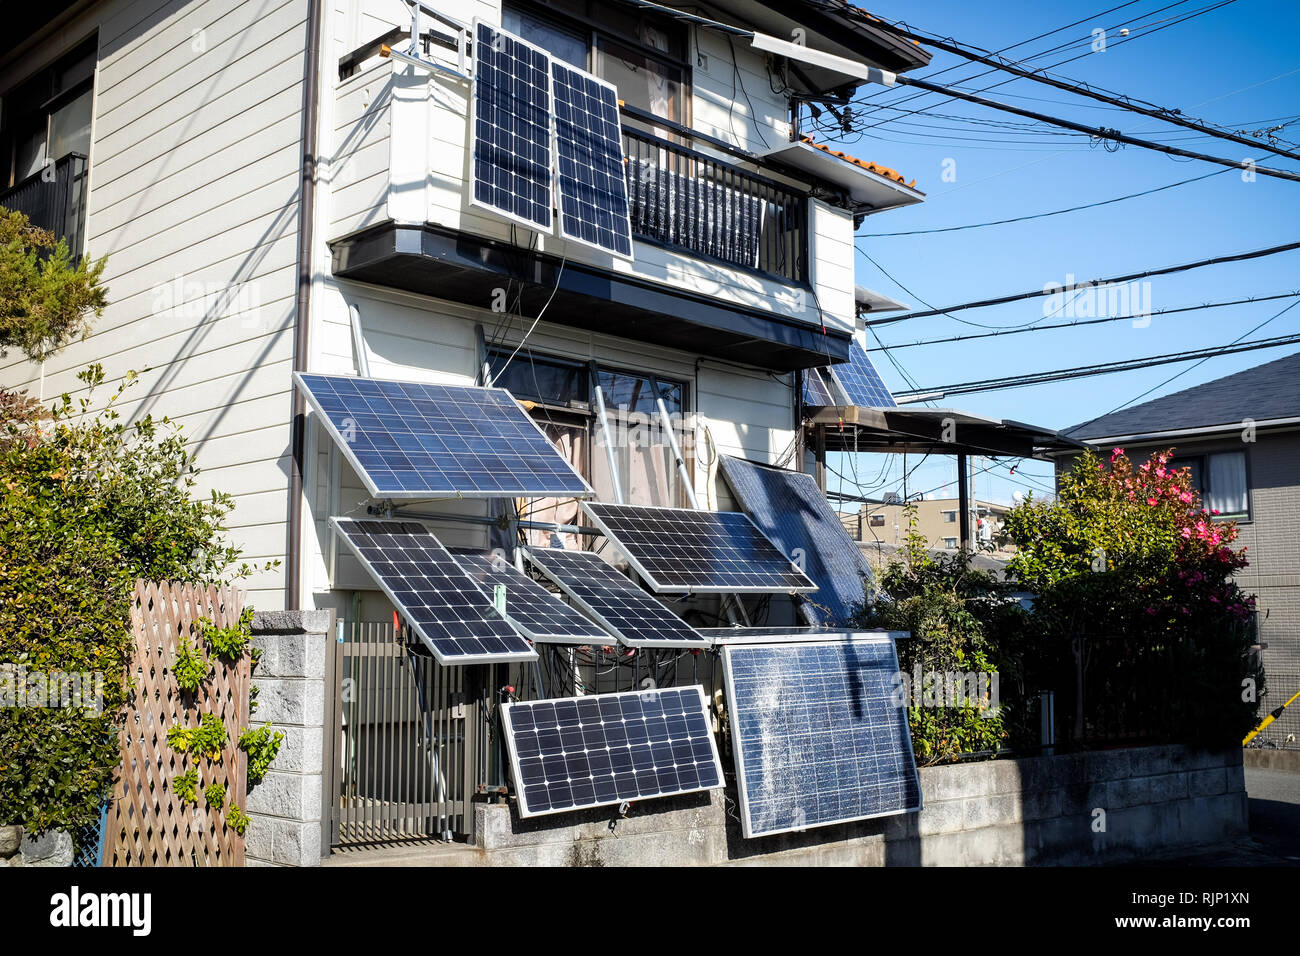 A house in Osaka, Japan, with lots of solar panels attached. It's highly unusual to see panels attached in this way. - Stock Image